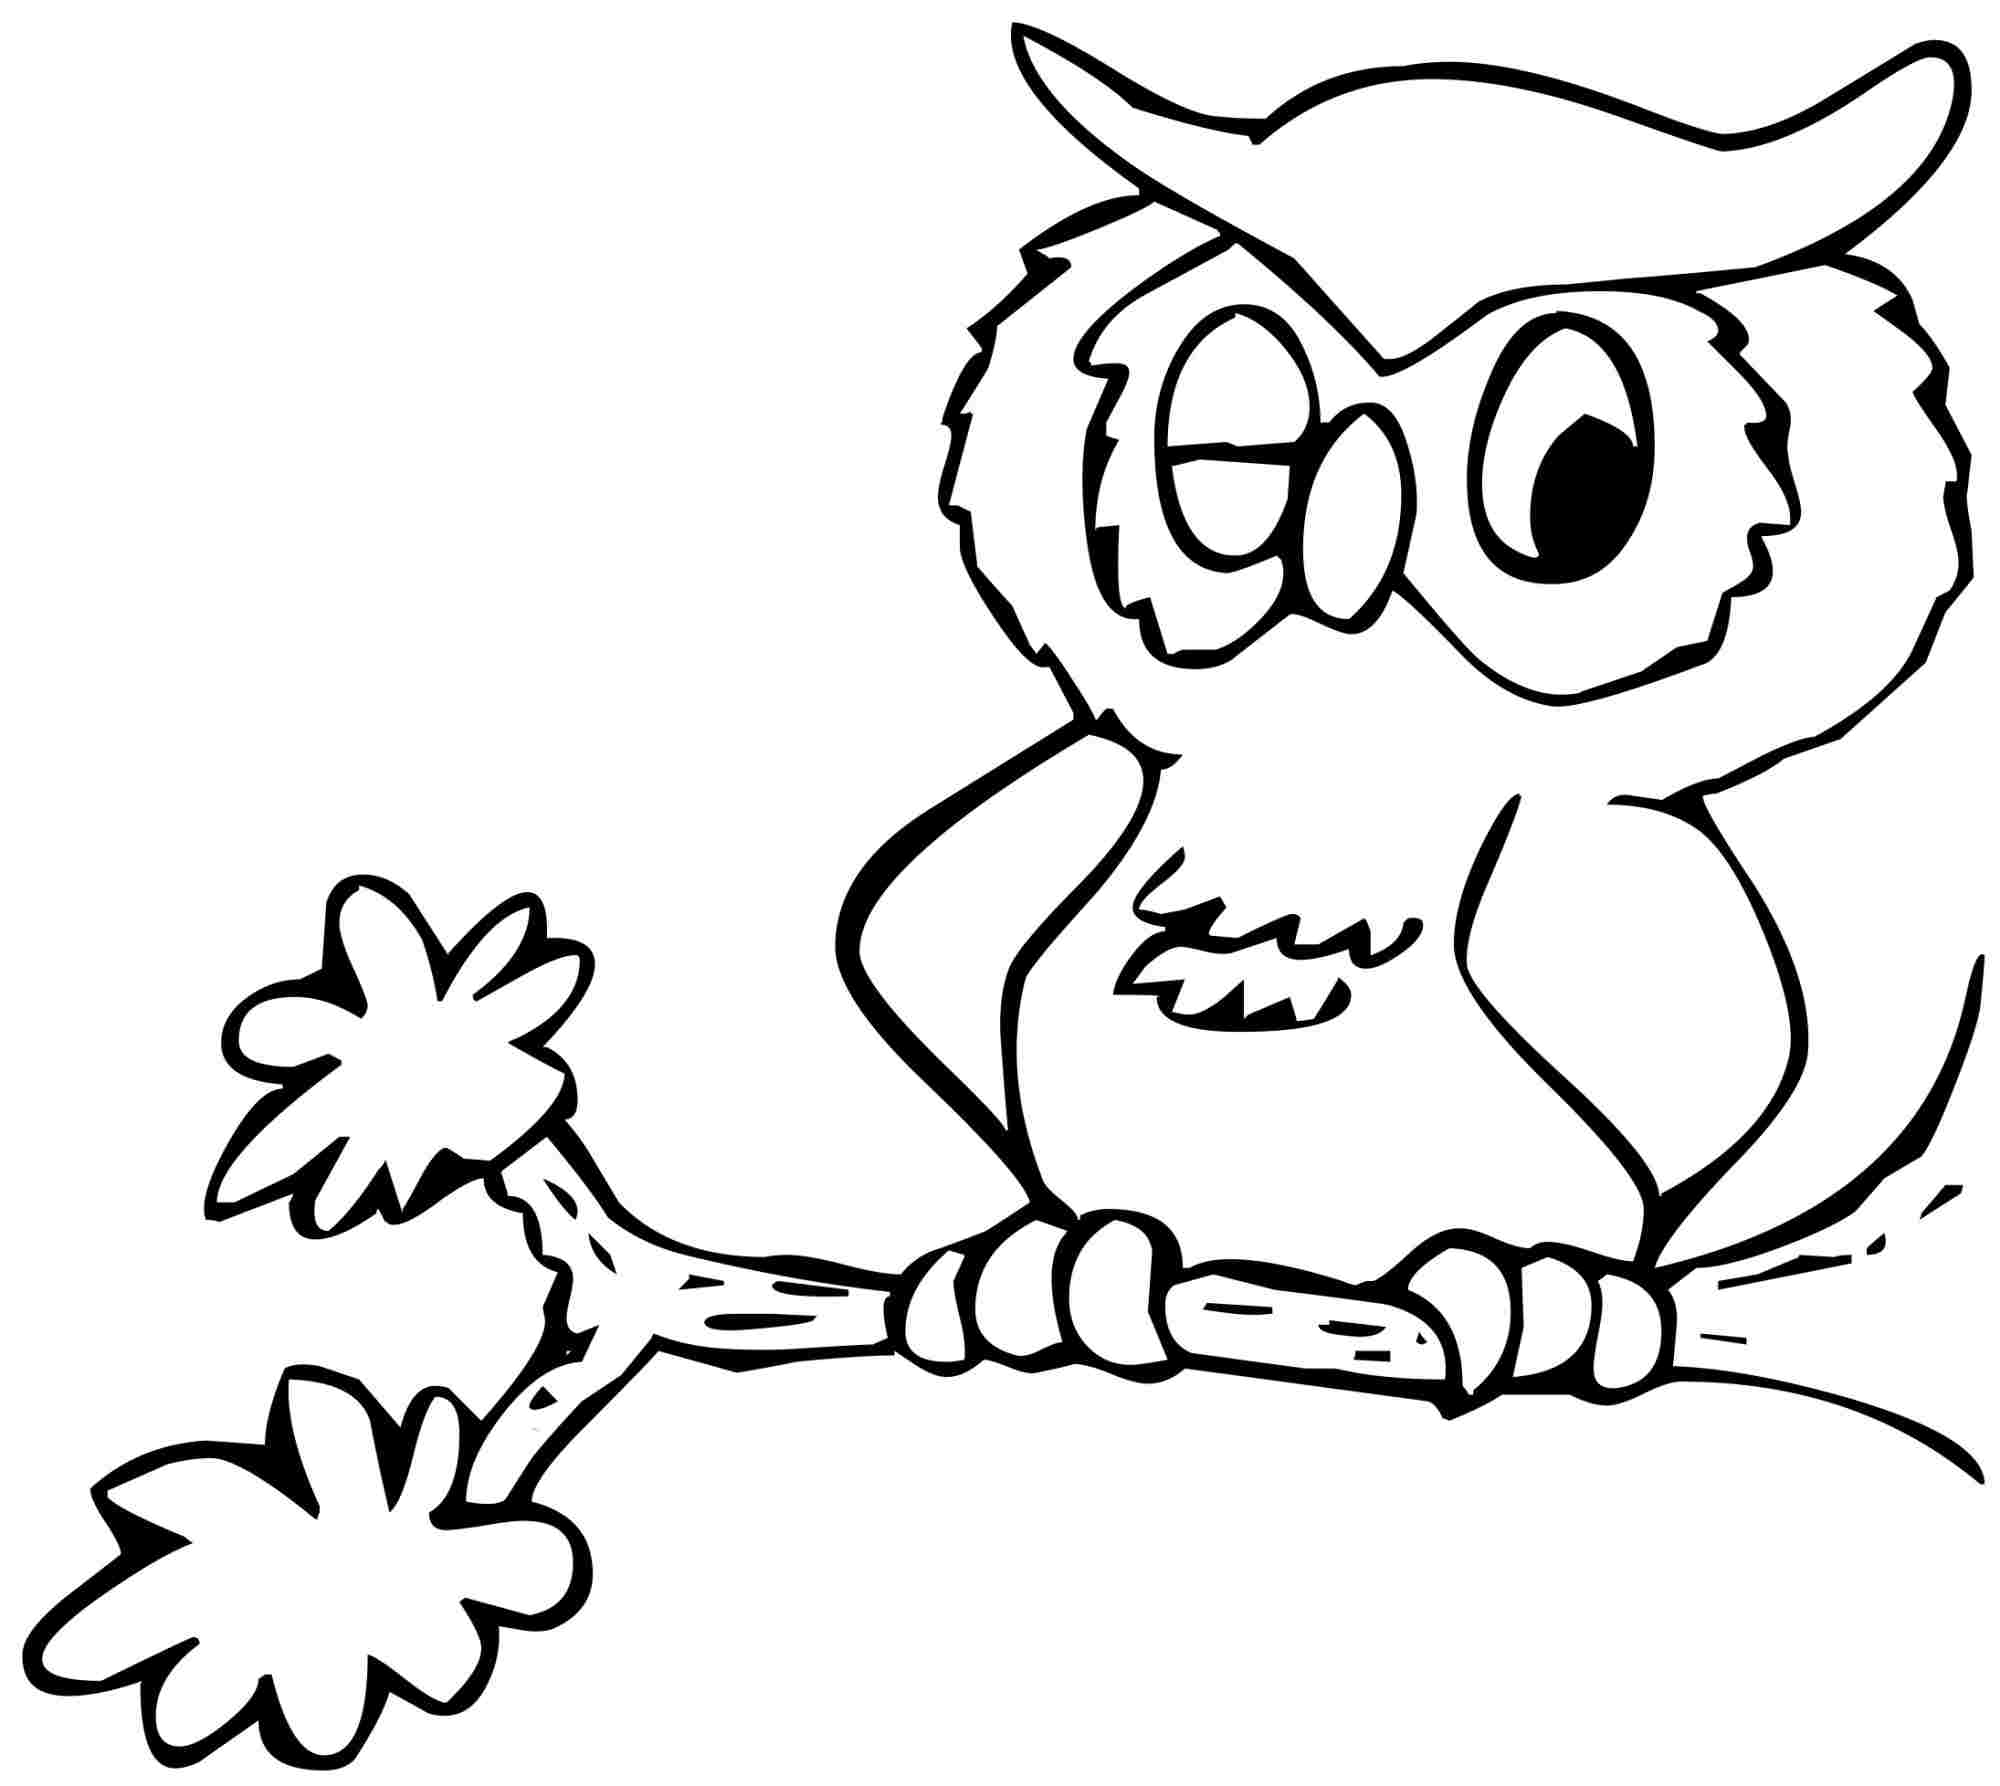 2000x1786 Coloring Pages Kids Cool Free Printable For Girls